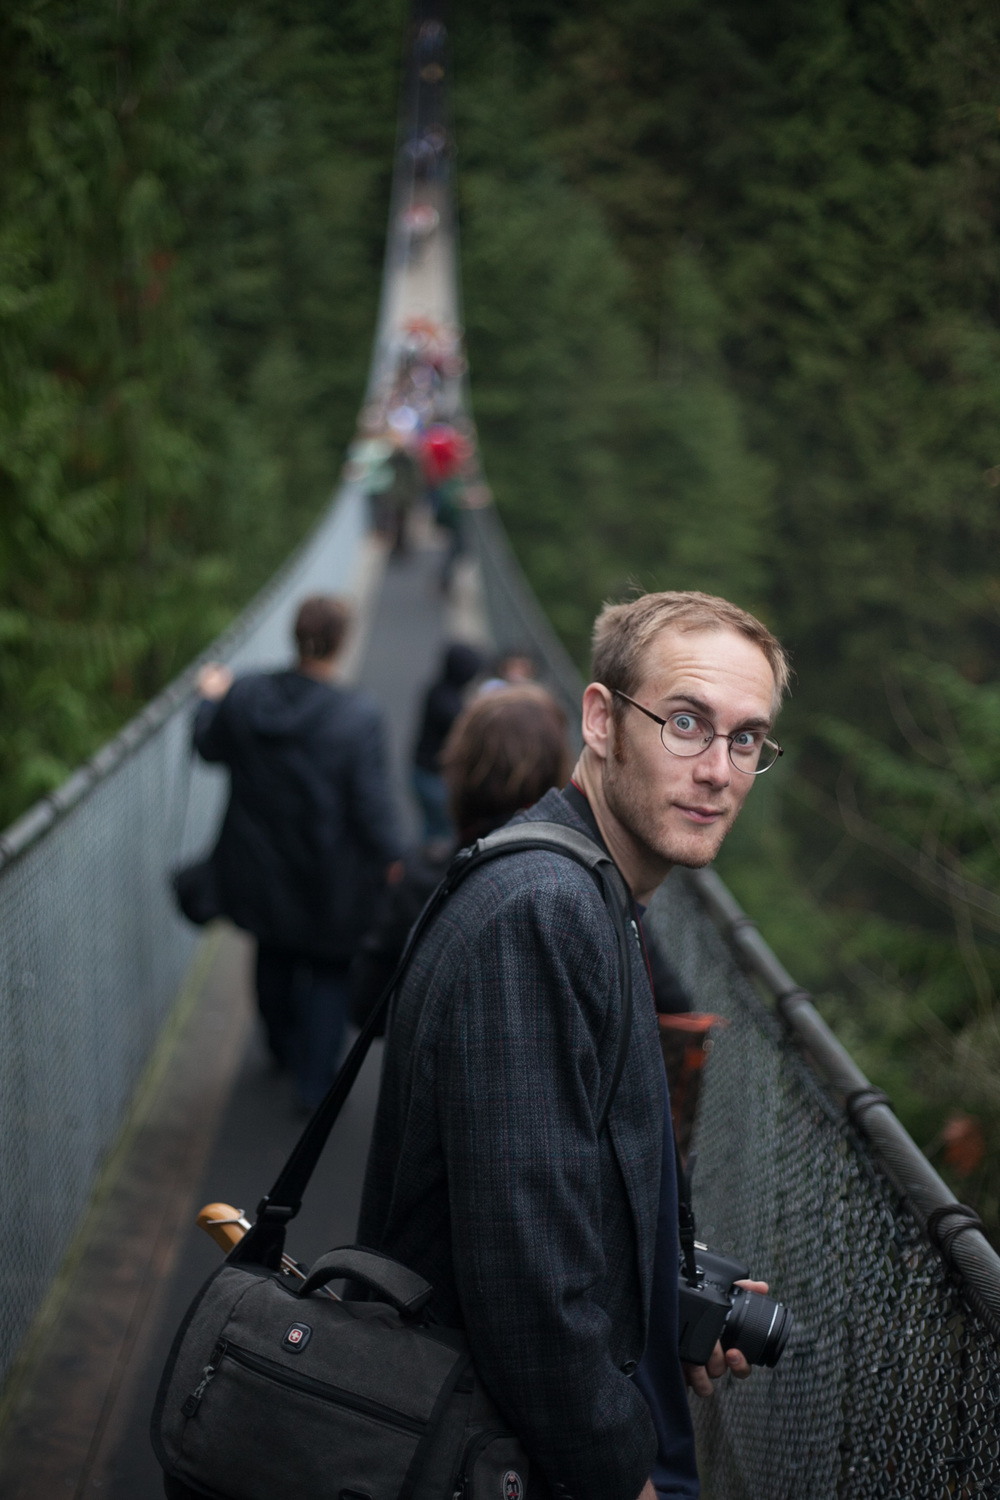 drew-sheafor_capilano-suspension-bridge.jpg